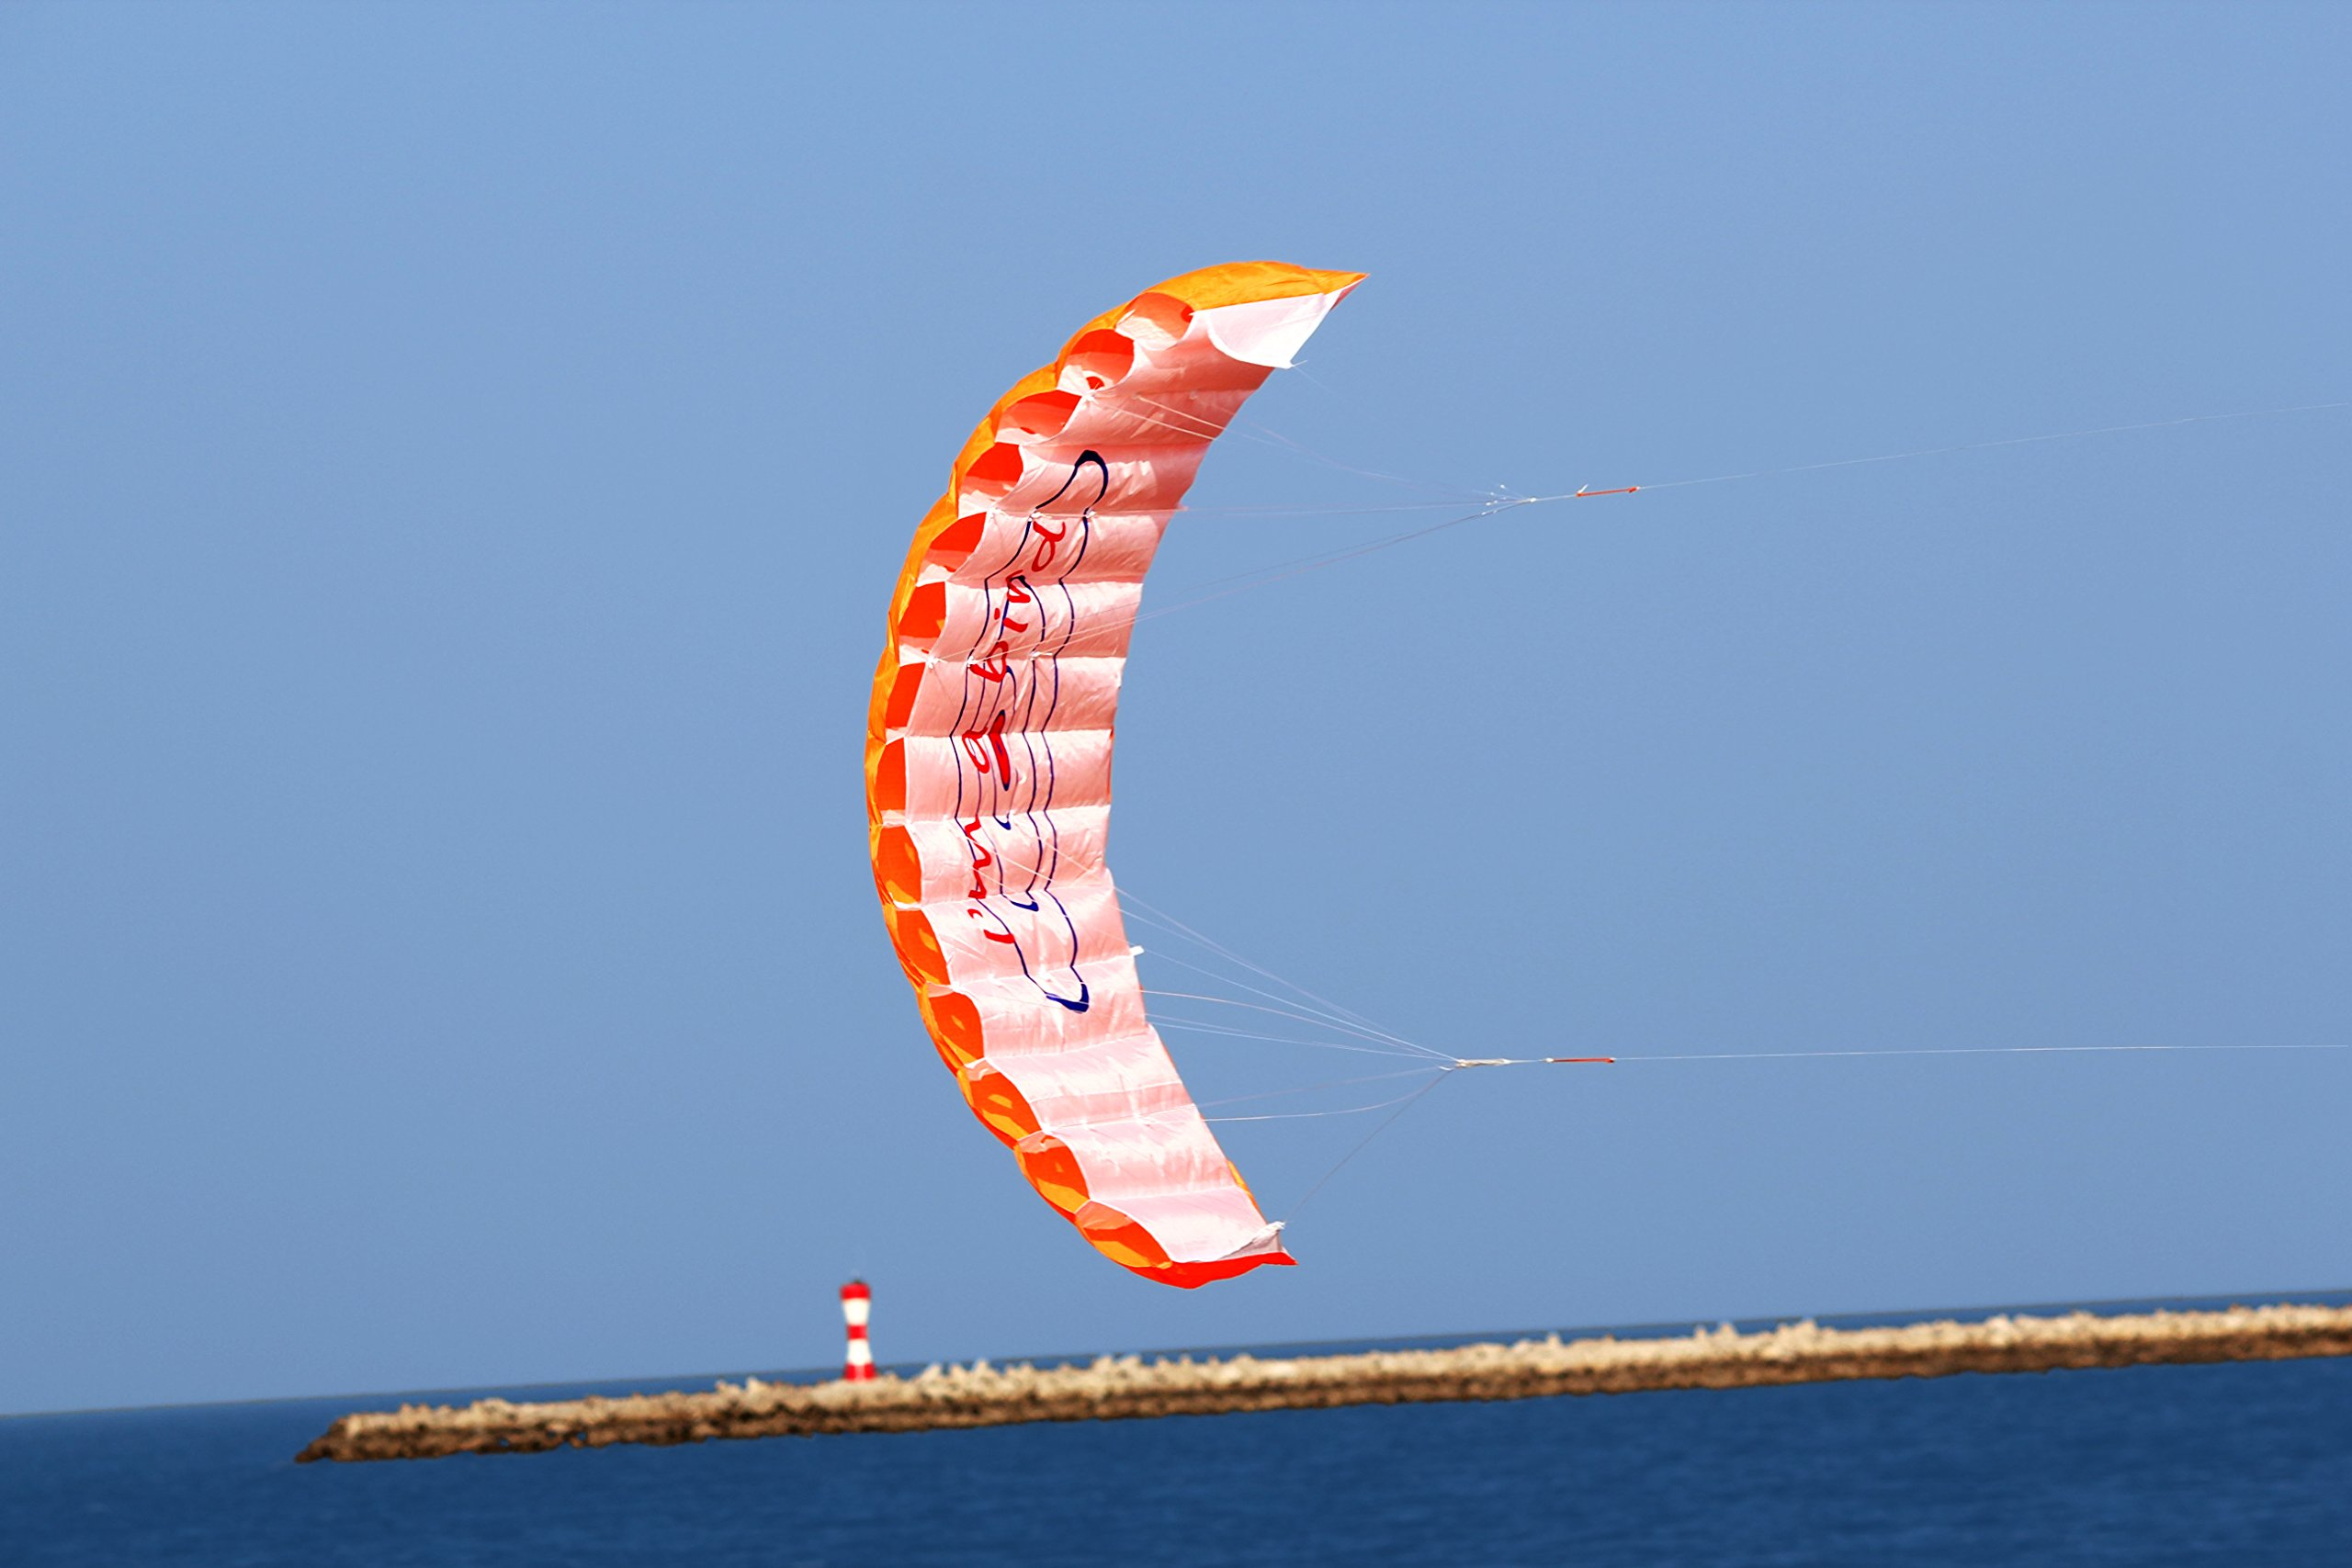 Hengda Kite NEW 1.4m Power Kite Outdoor FUN Toys Parafoil Parachute Dual Line Surfing ORANGE by Hengda kite (Image #6)